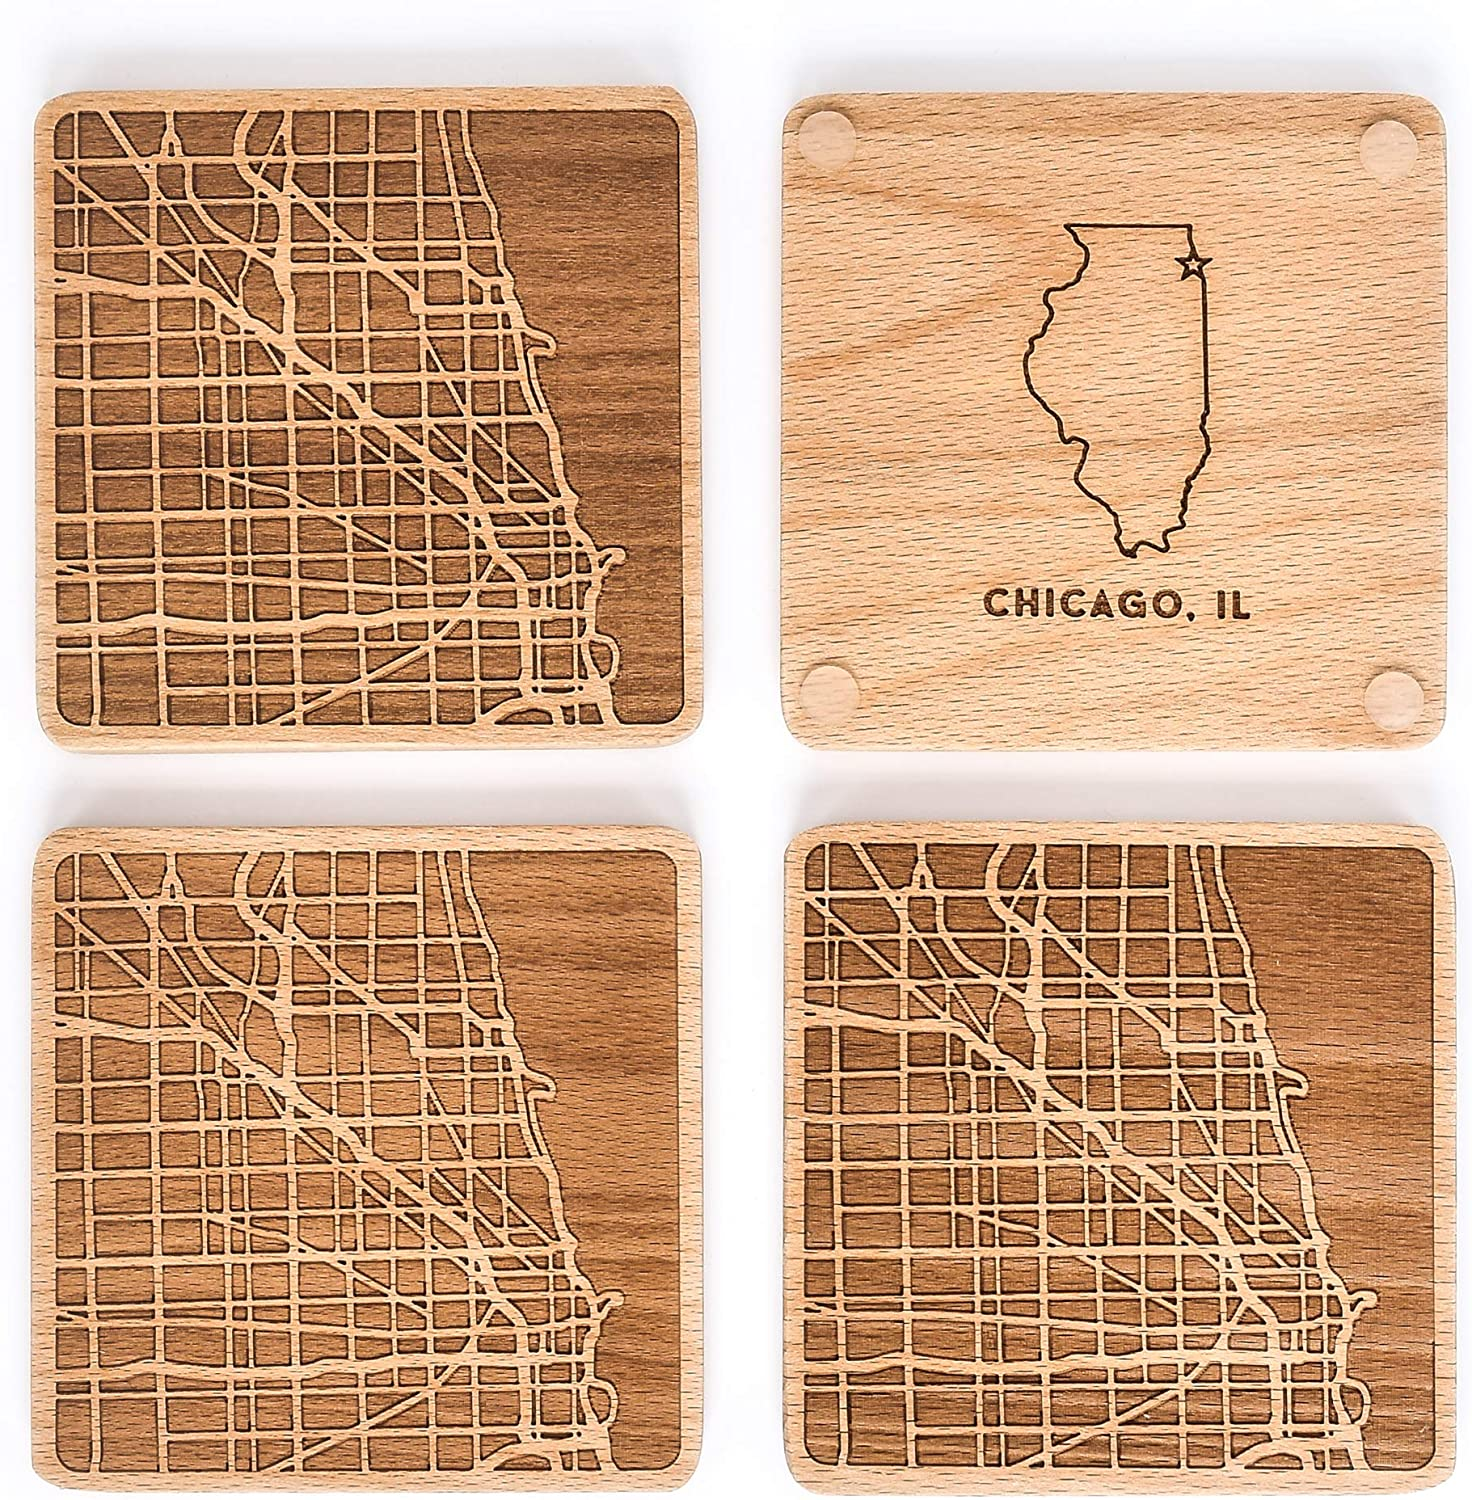 Greenline Goods Beech Wood Coasters Etched Wooden Coaster Set for Chicago Lovers | Set of 4 | Etched with Chicago Map and State of Illinois | 2 Sided | Includes Protective Silicone Furniture Pads